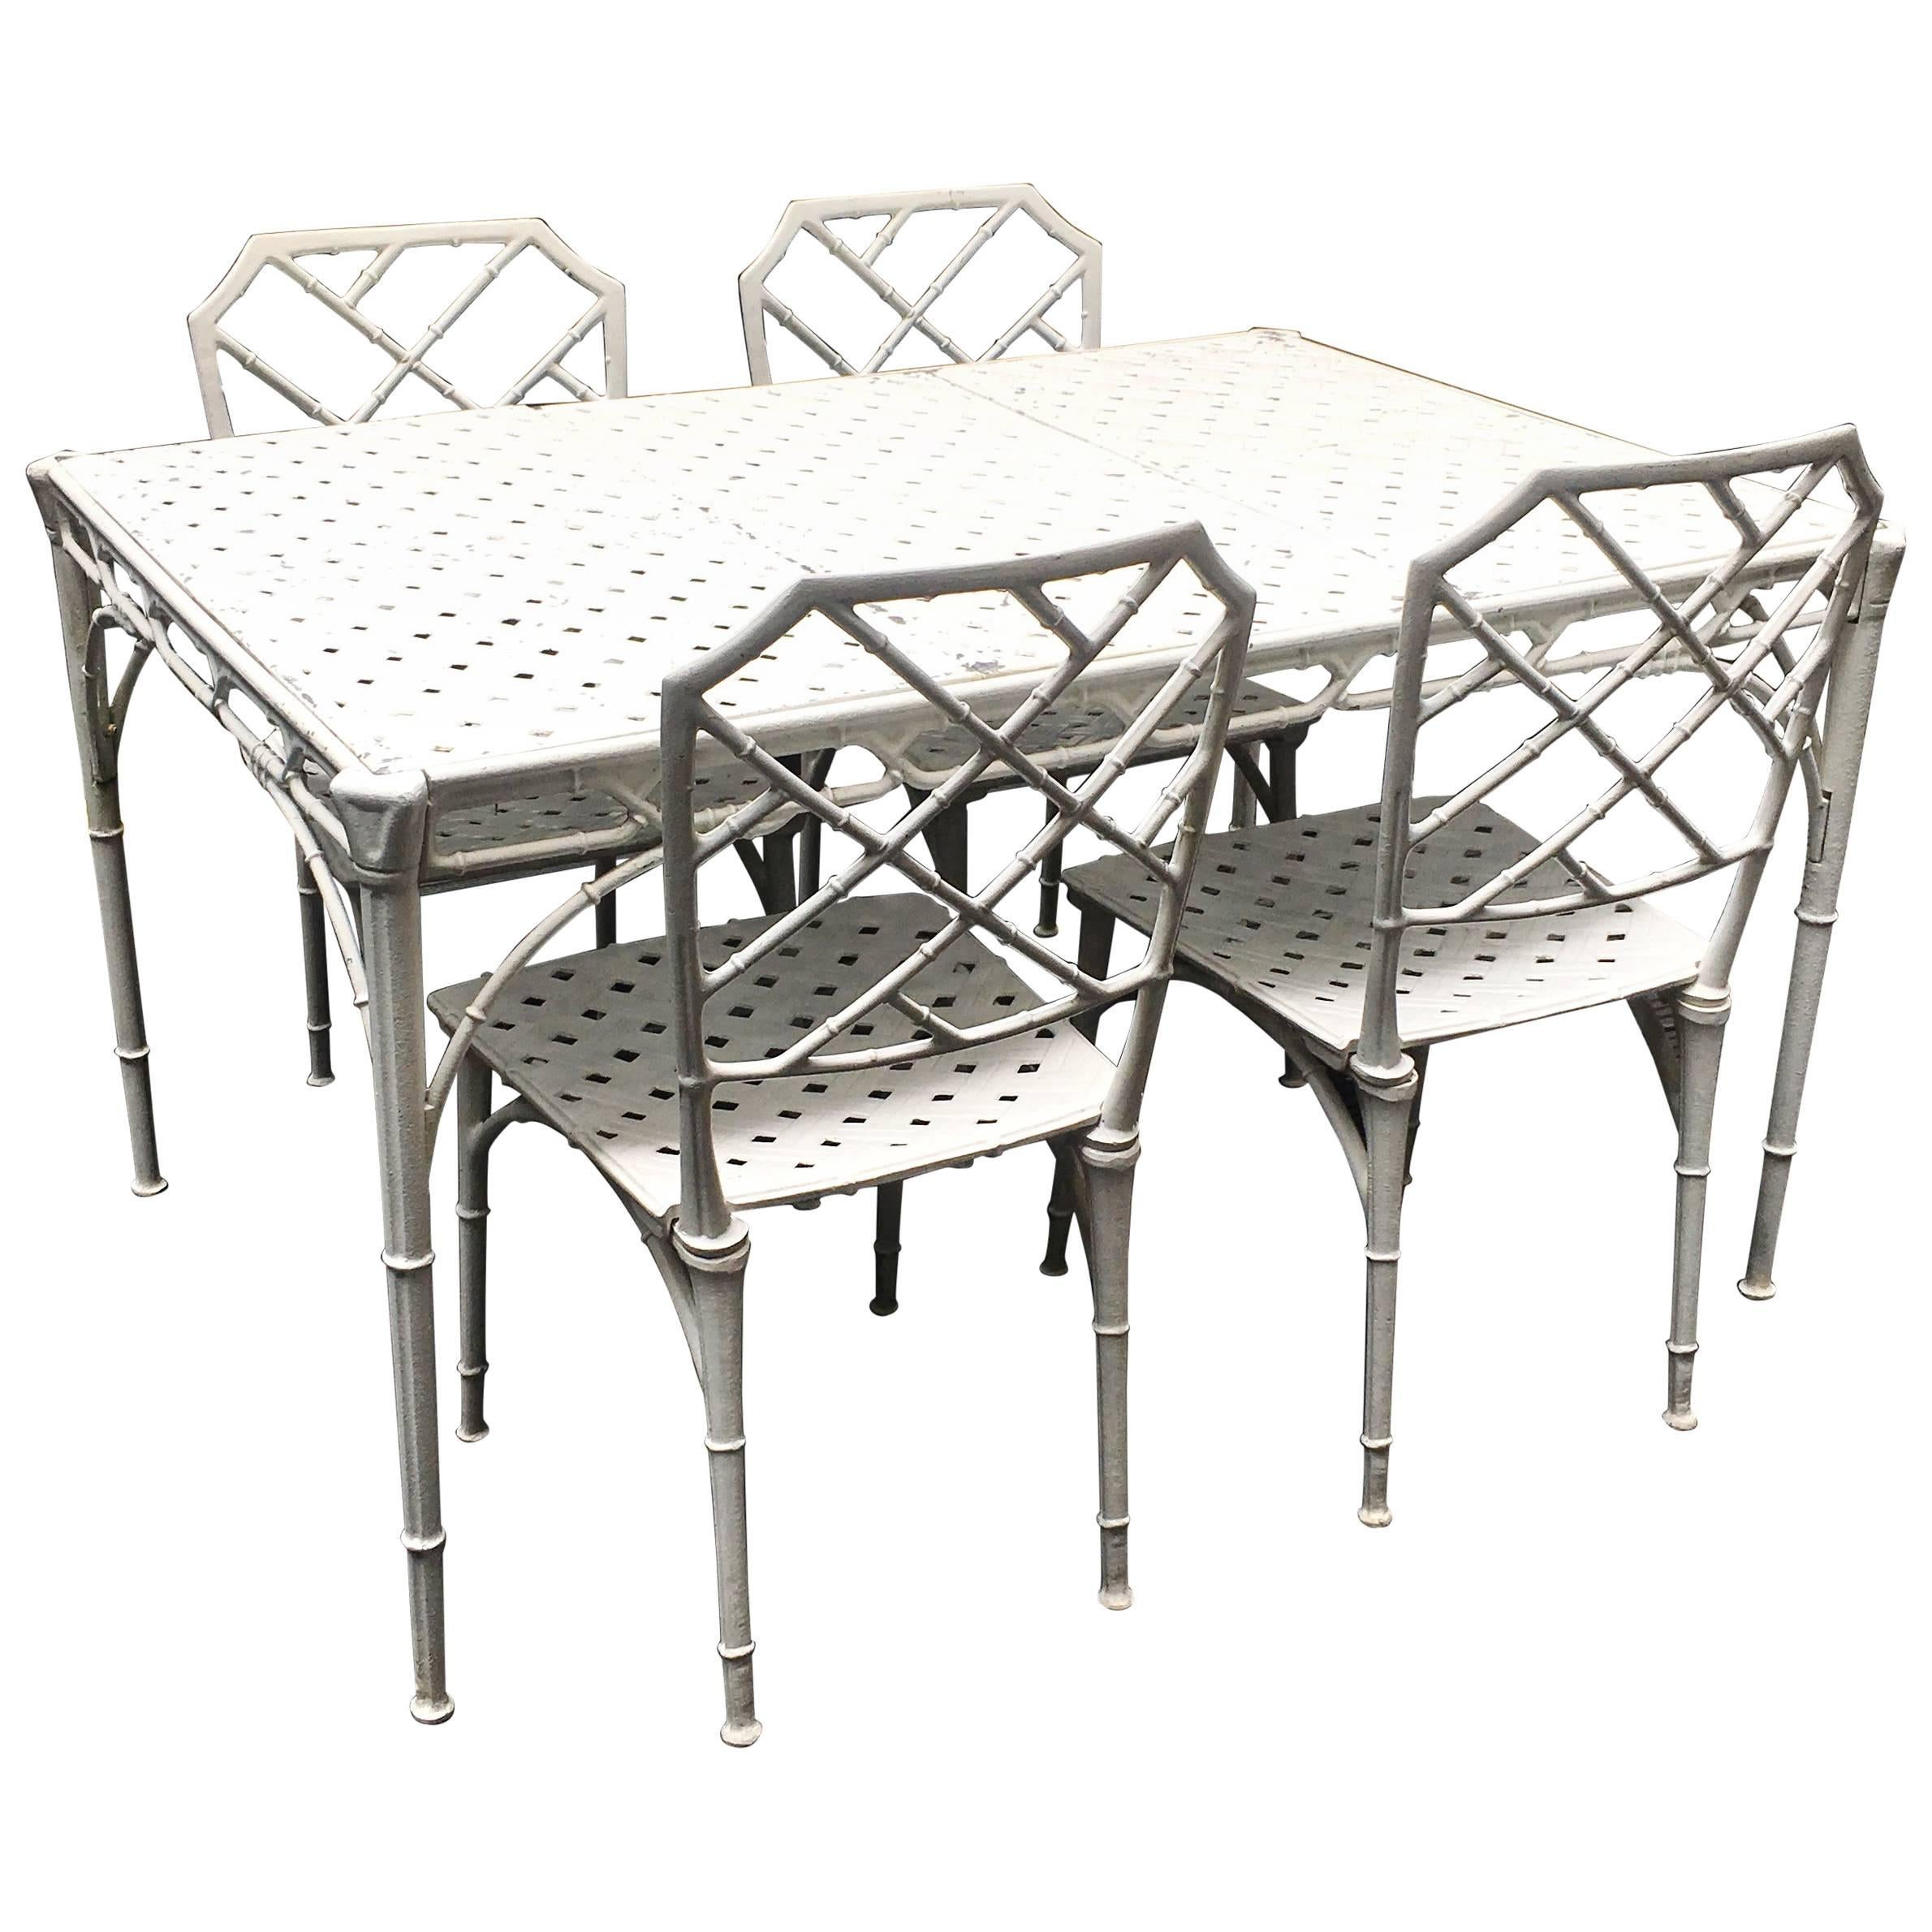 Faux Bamboo Patio Table And Chairs, 1960s 1